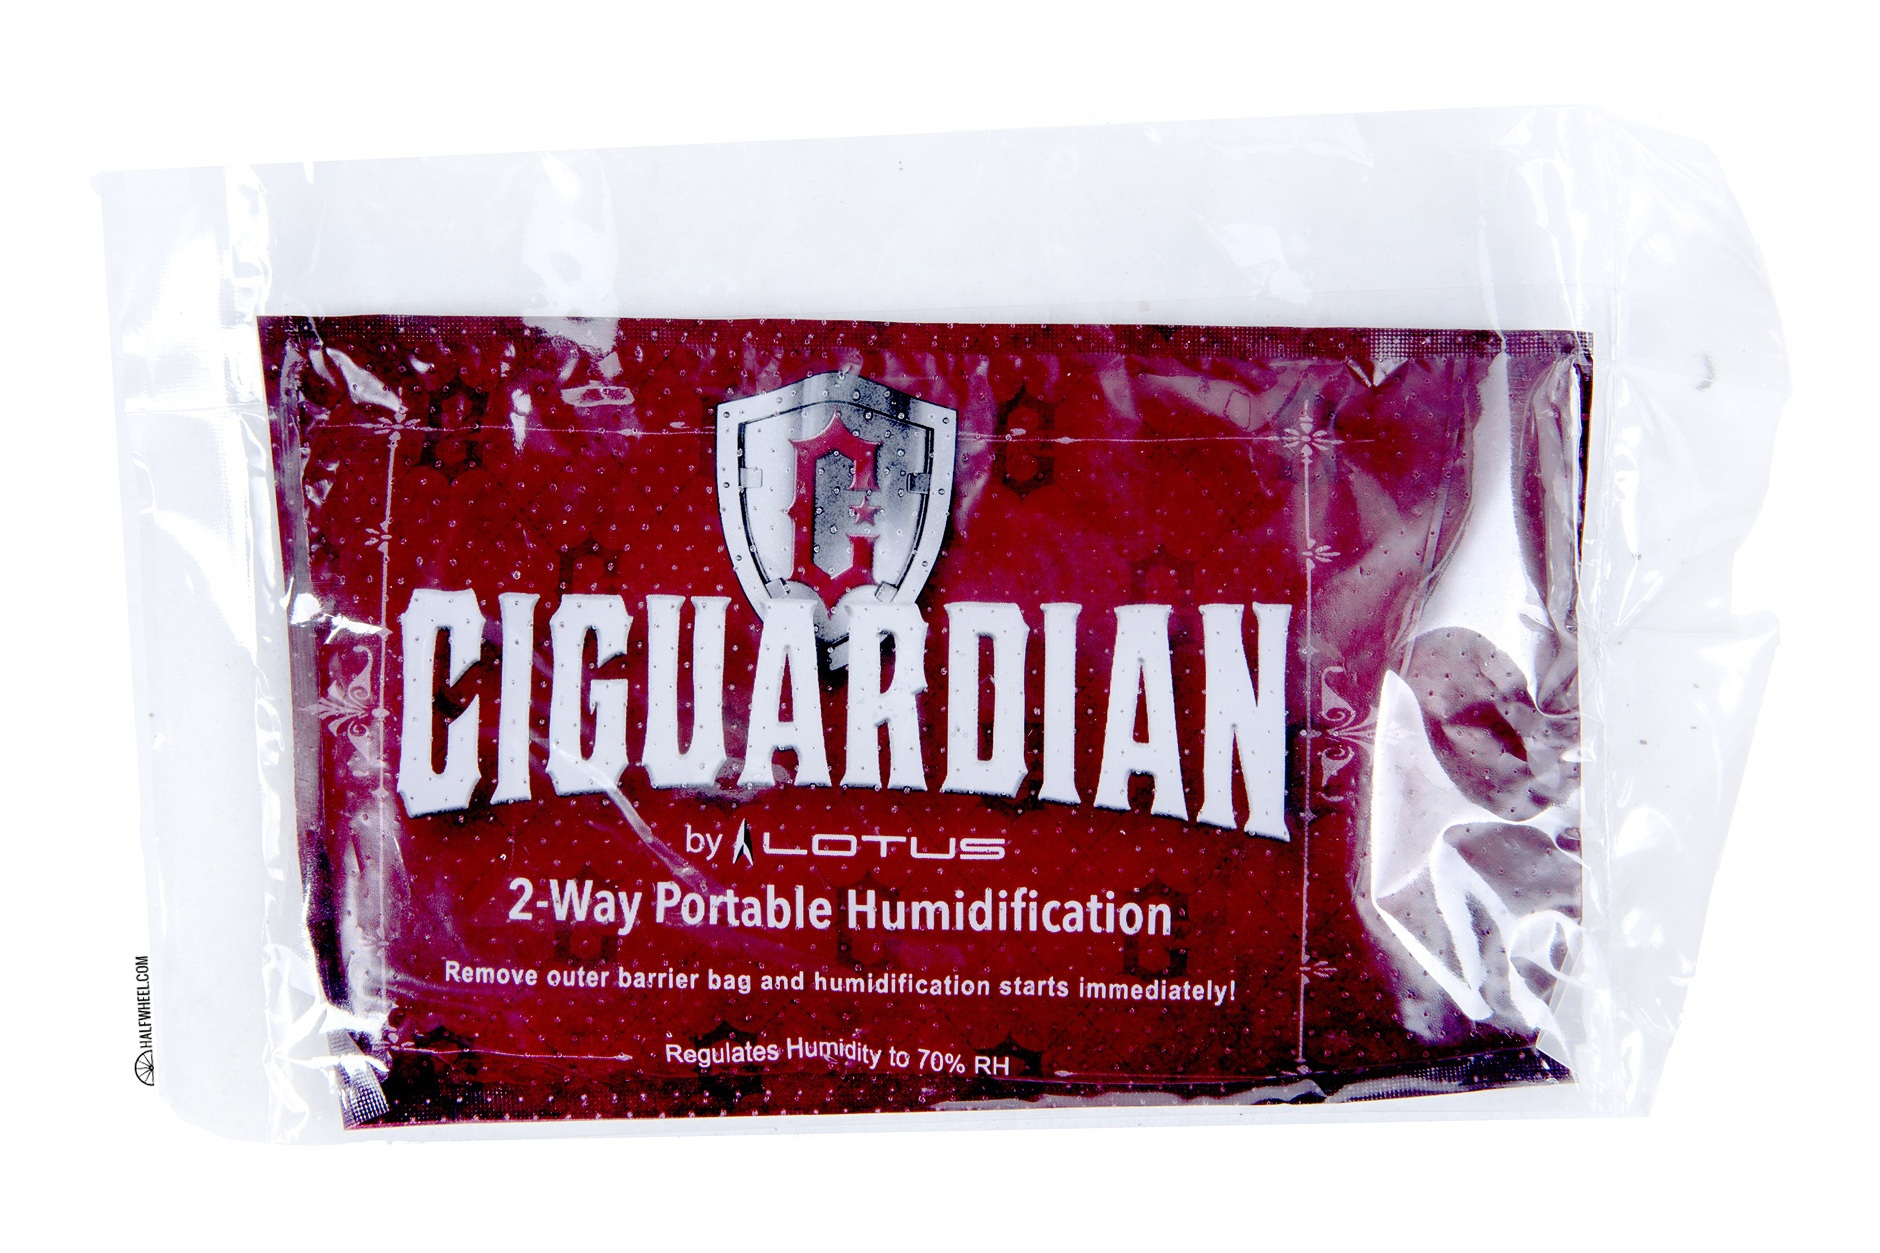 Ciguardian Humidification Pack packaging